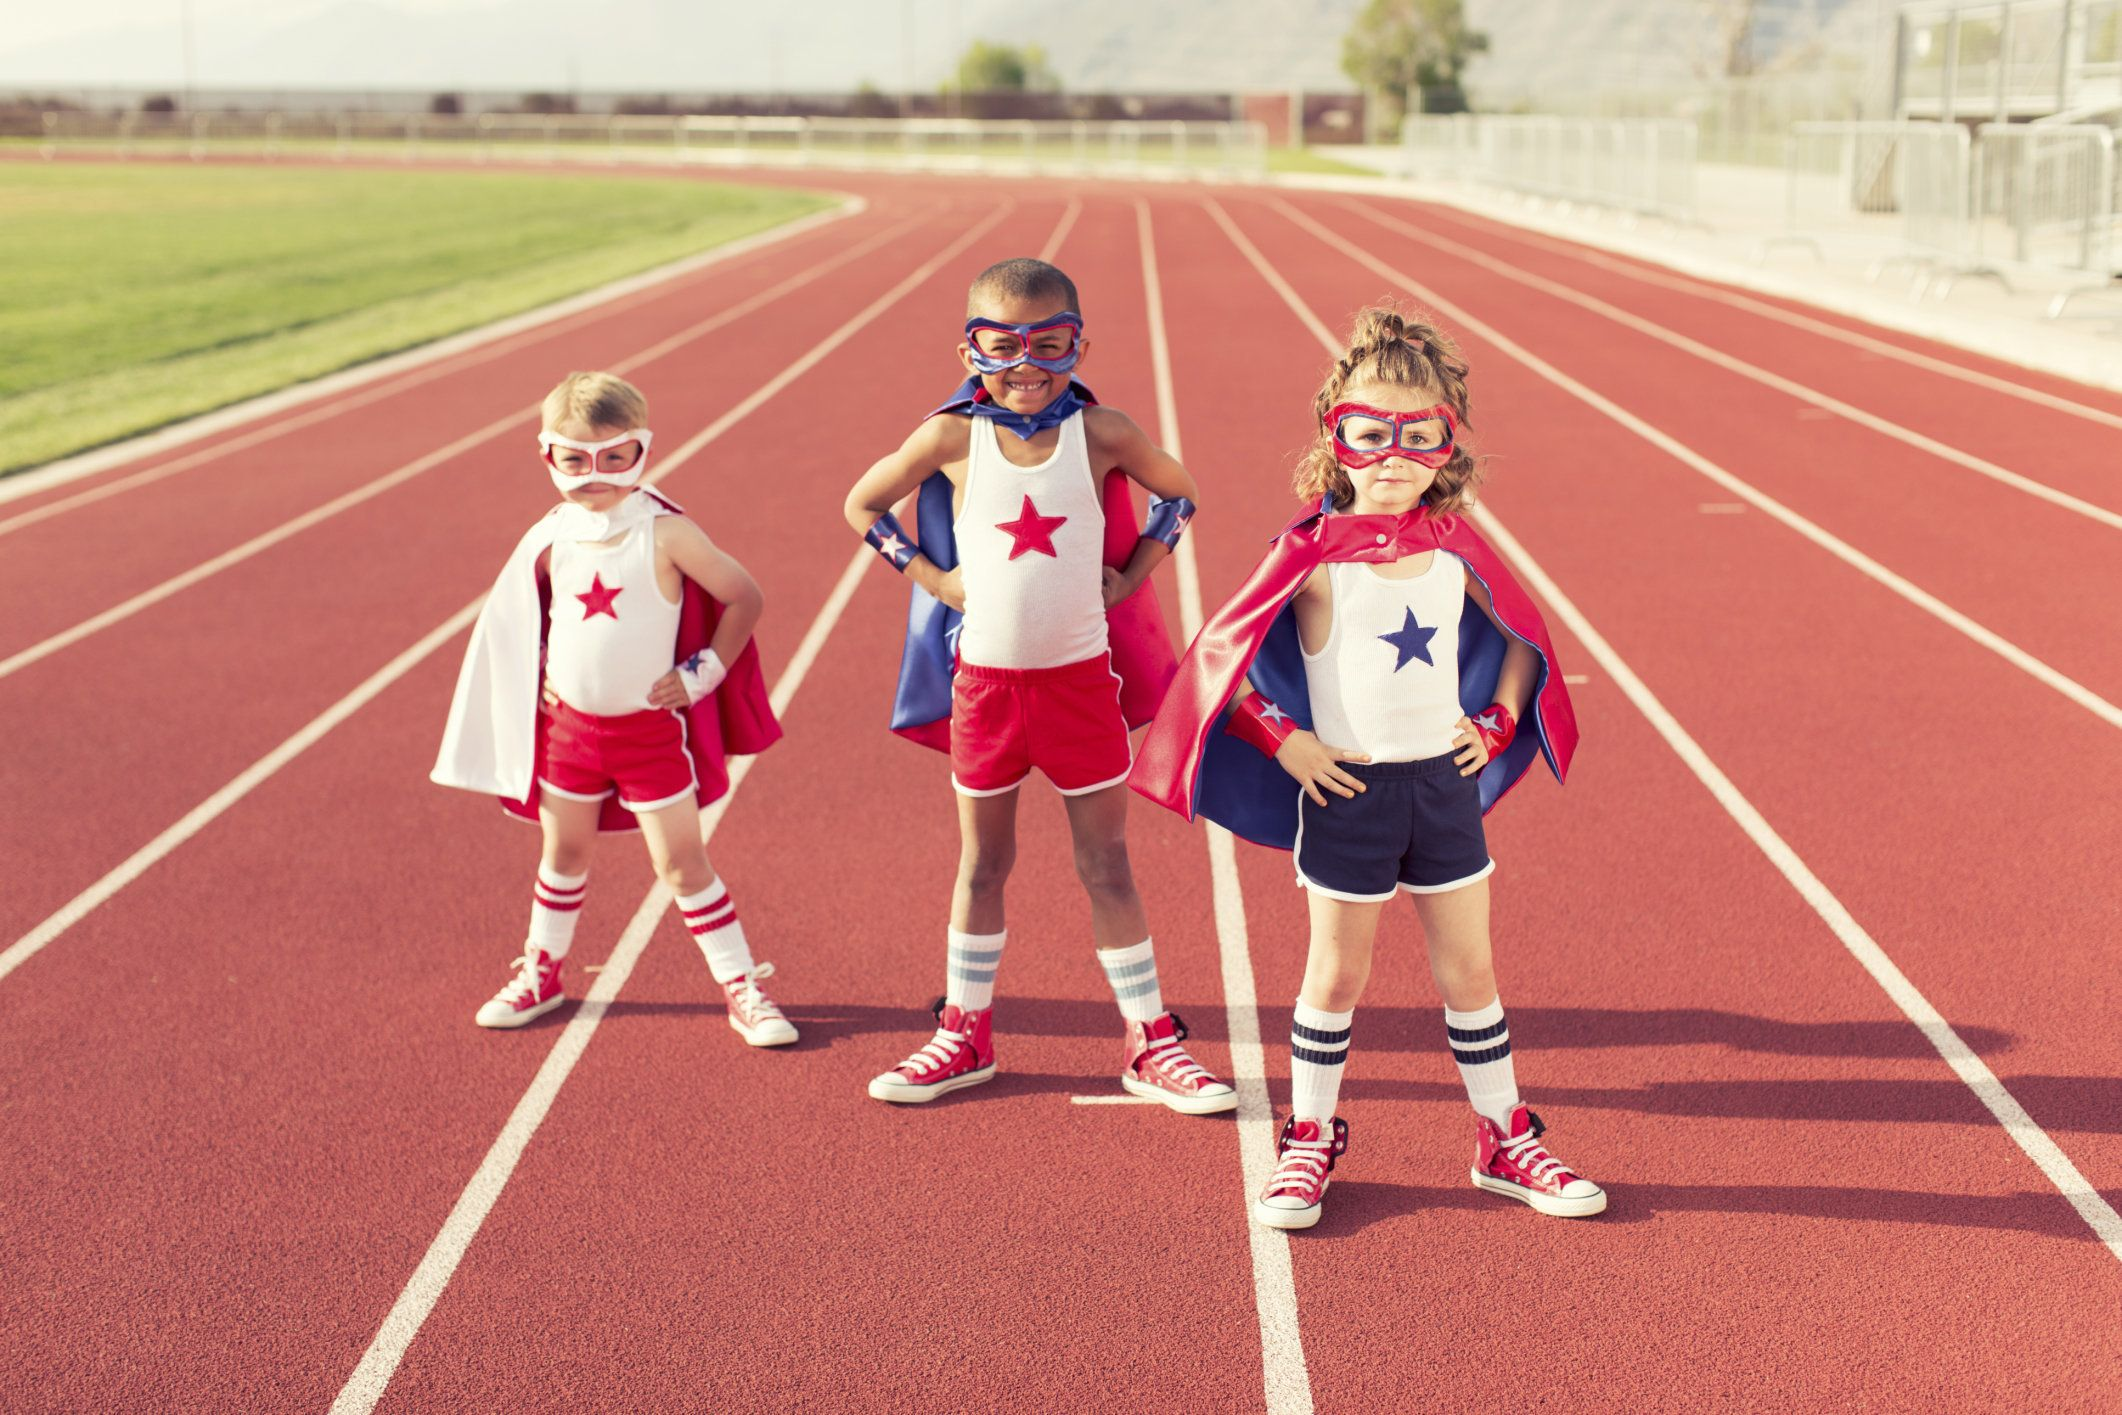 Three young superheroes train to be the fastest superheroes on the planet.